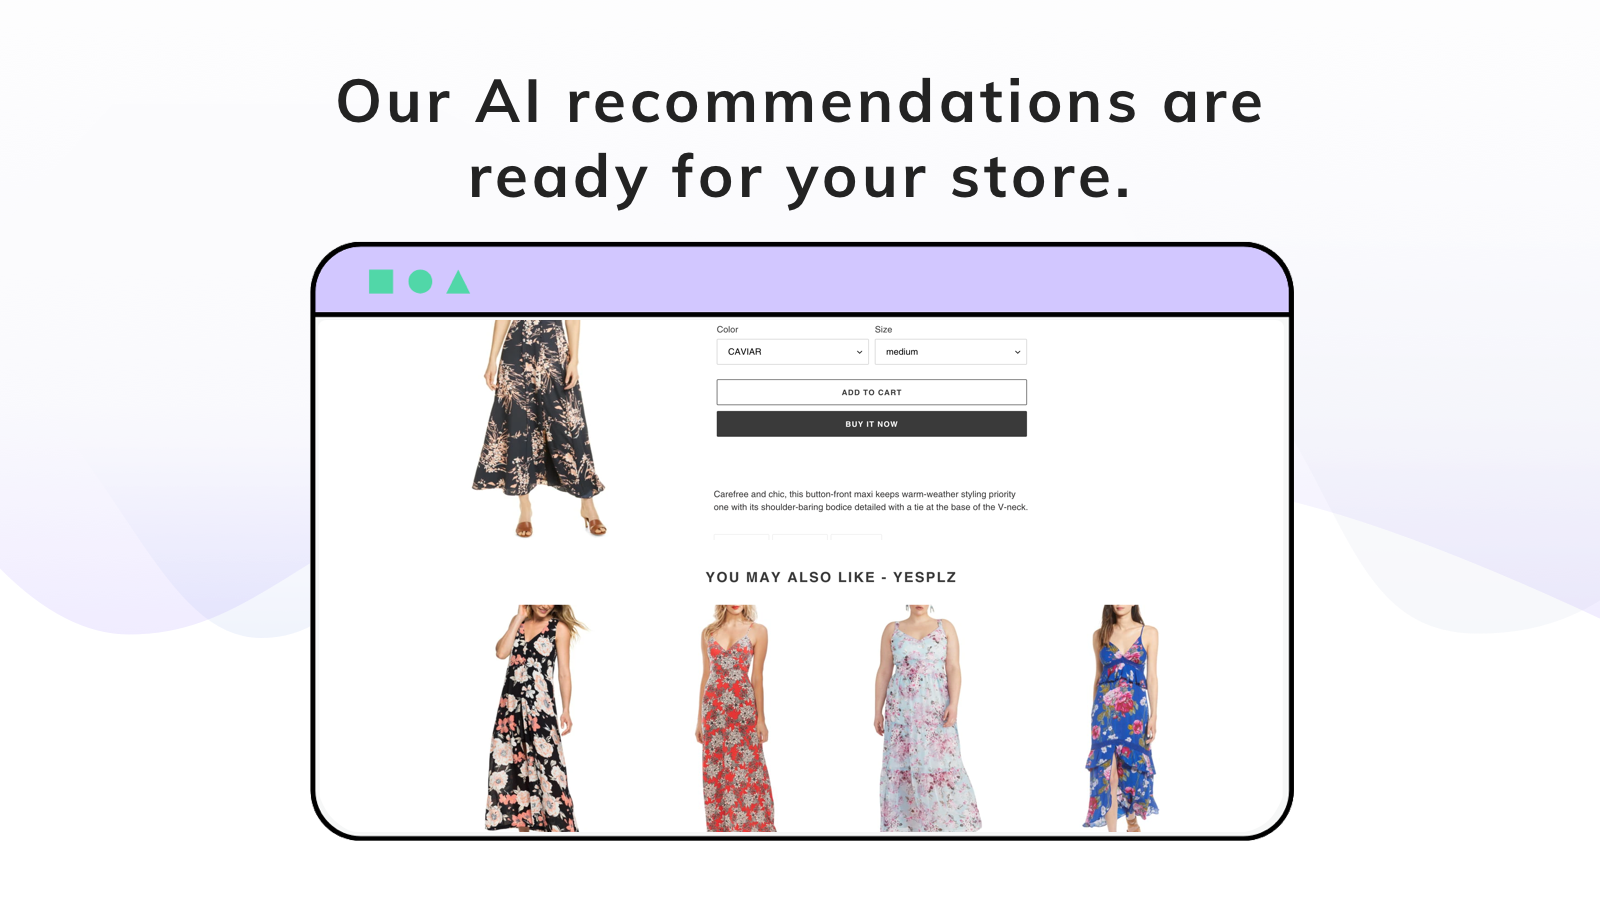 upsell recommendation results dresses